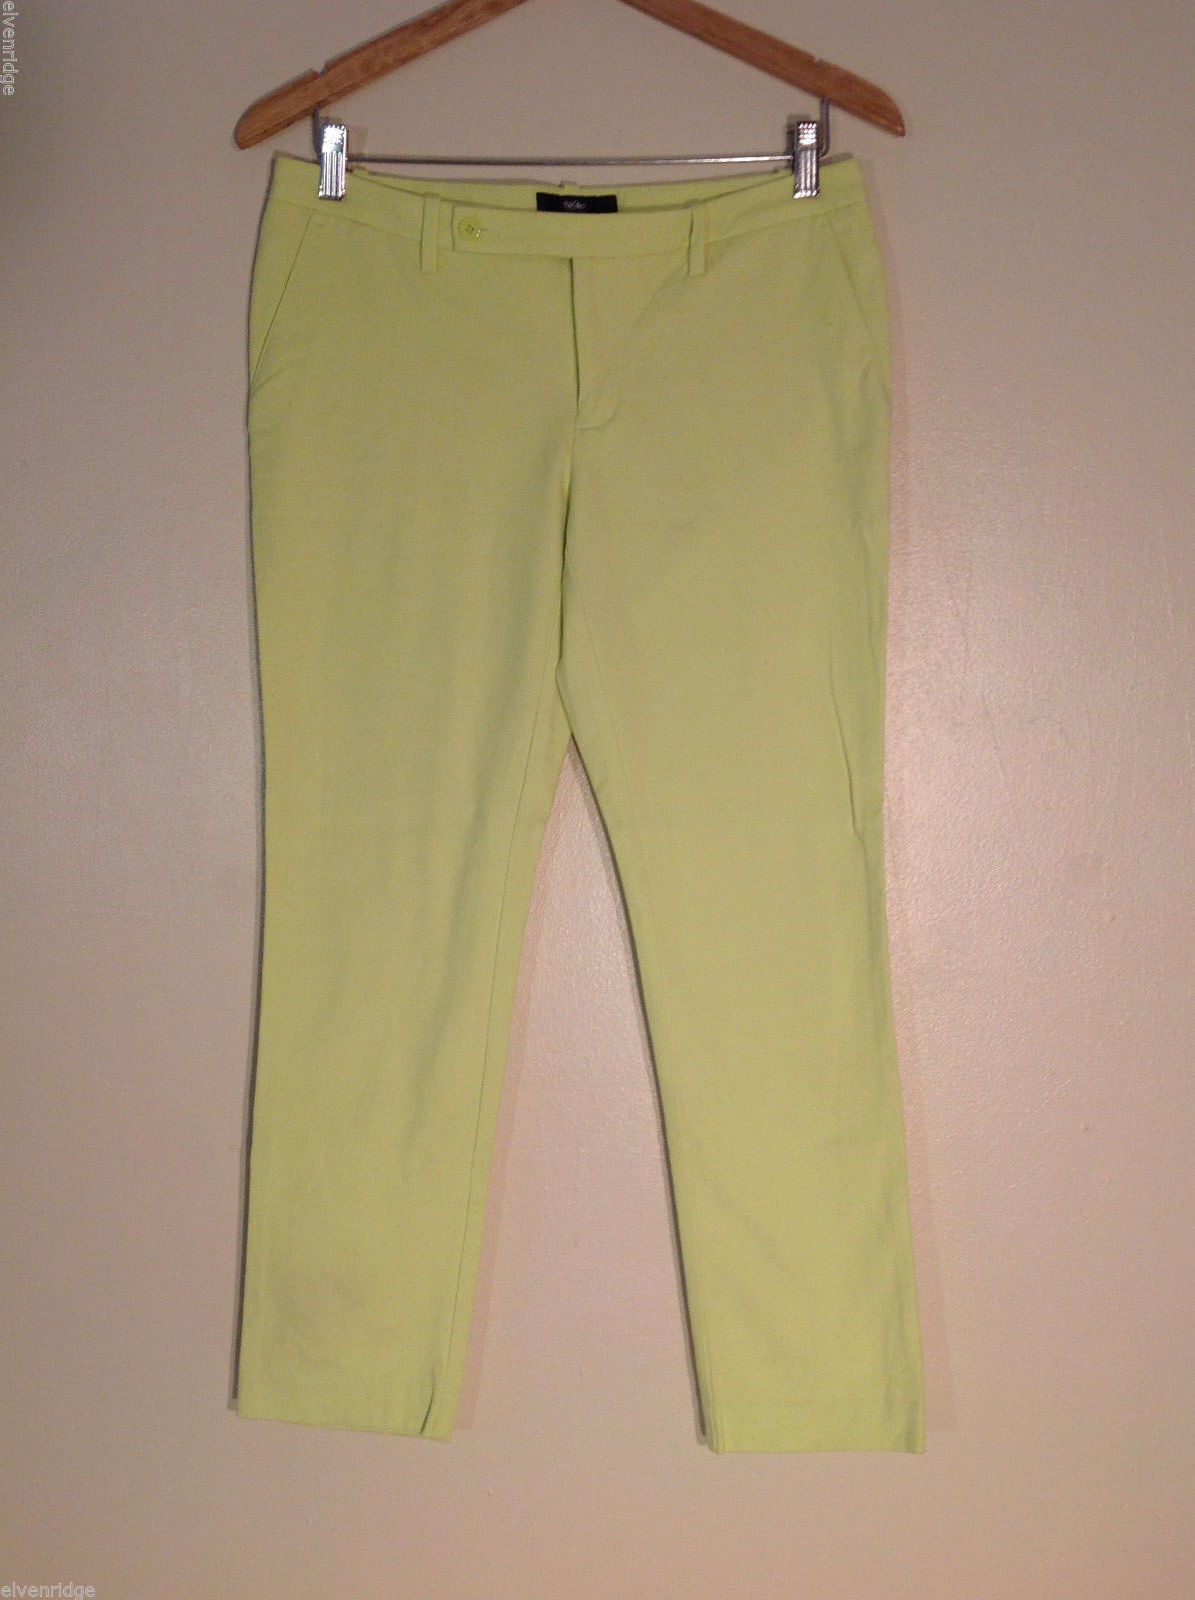 Mossimo Women's Size 6 Casual Pants Electric Green Low Rise Cropped Straight Leg